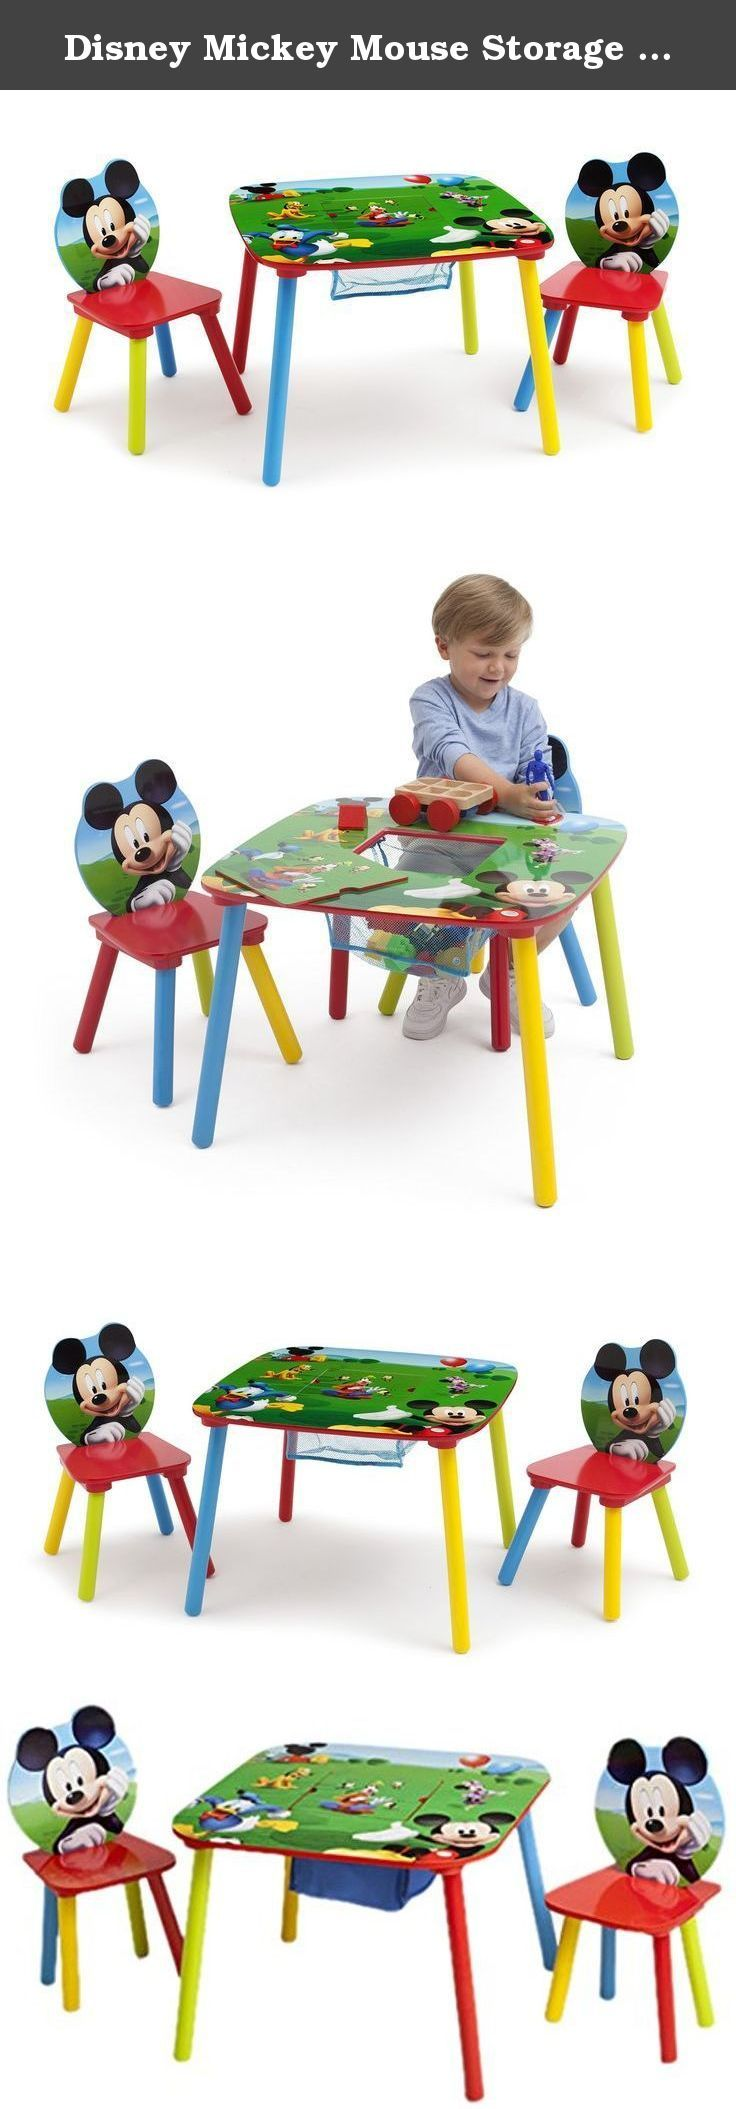 Disney mickey mouse storage table and chairs set by delta